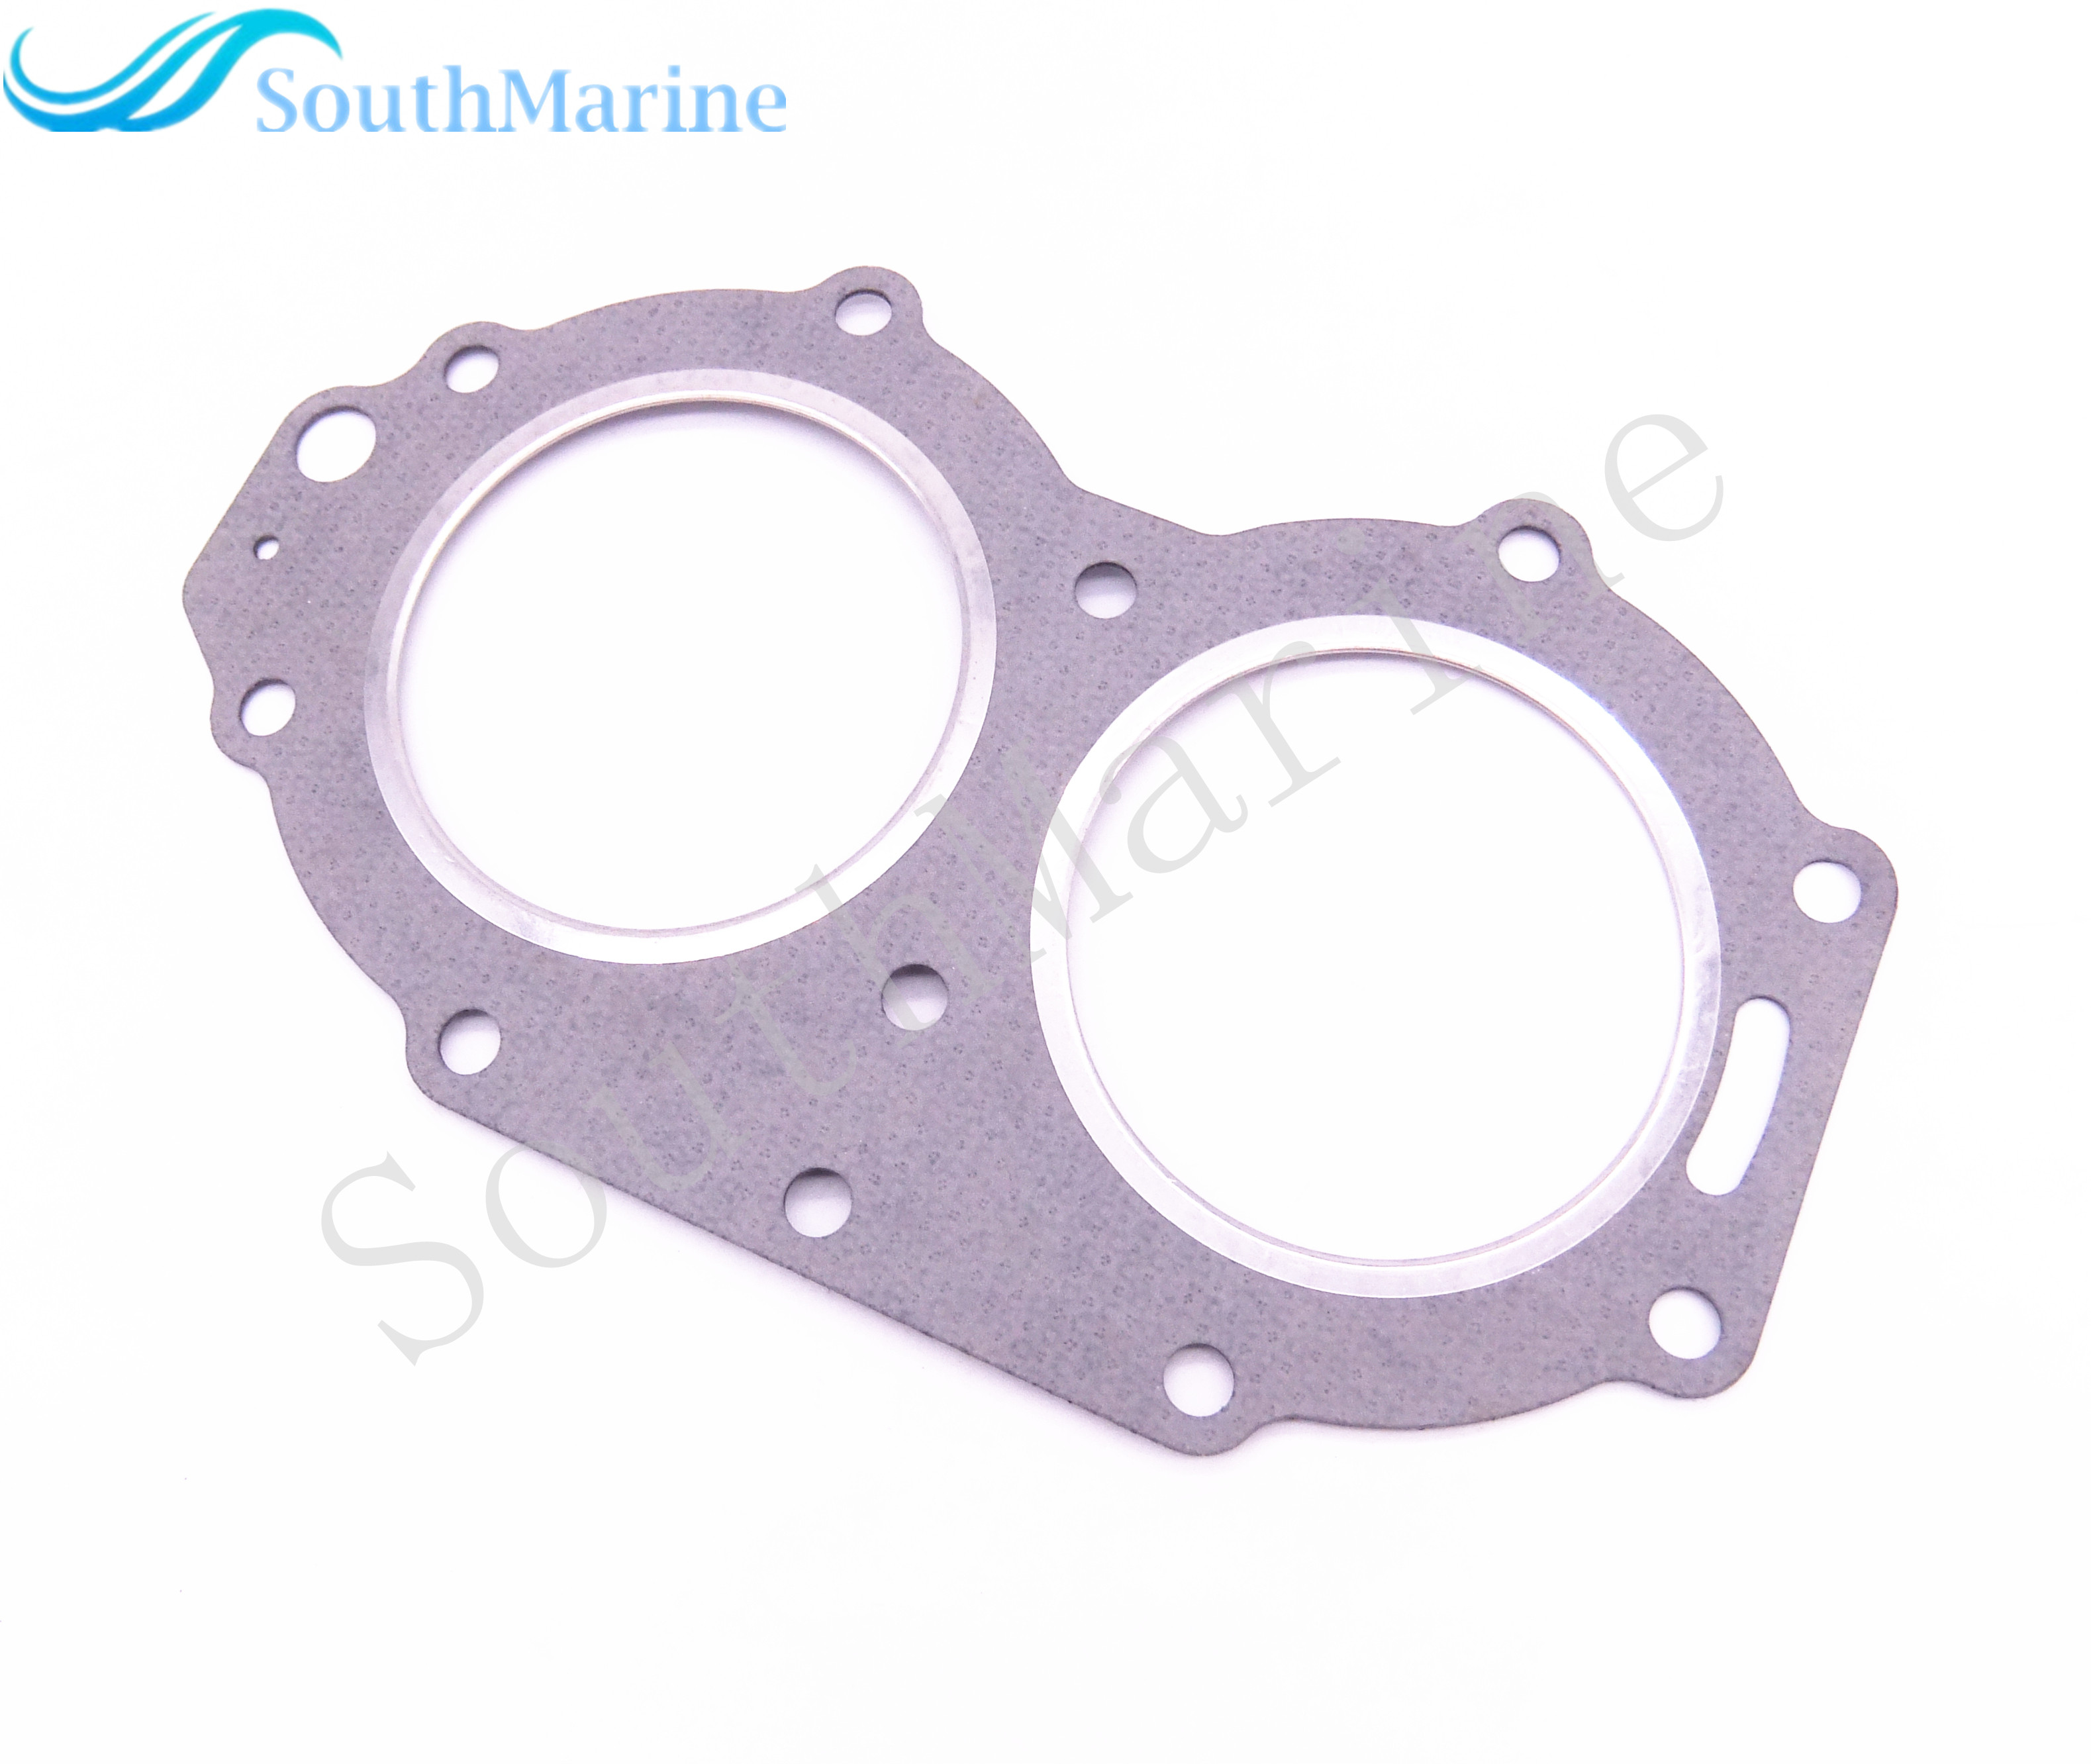 Cylinder Head Gasket 2 Per Engine 07v103147: Outboard Engine 66T 11181 A2 Cylinder Head Gasket For